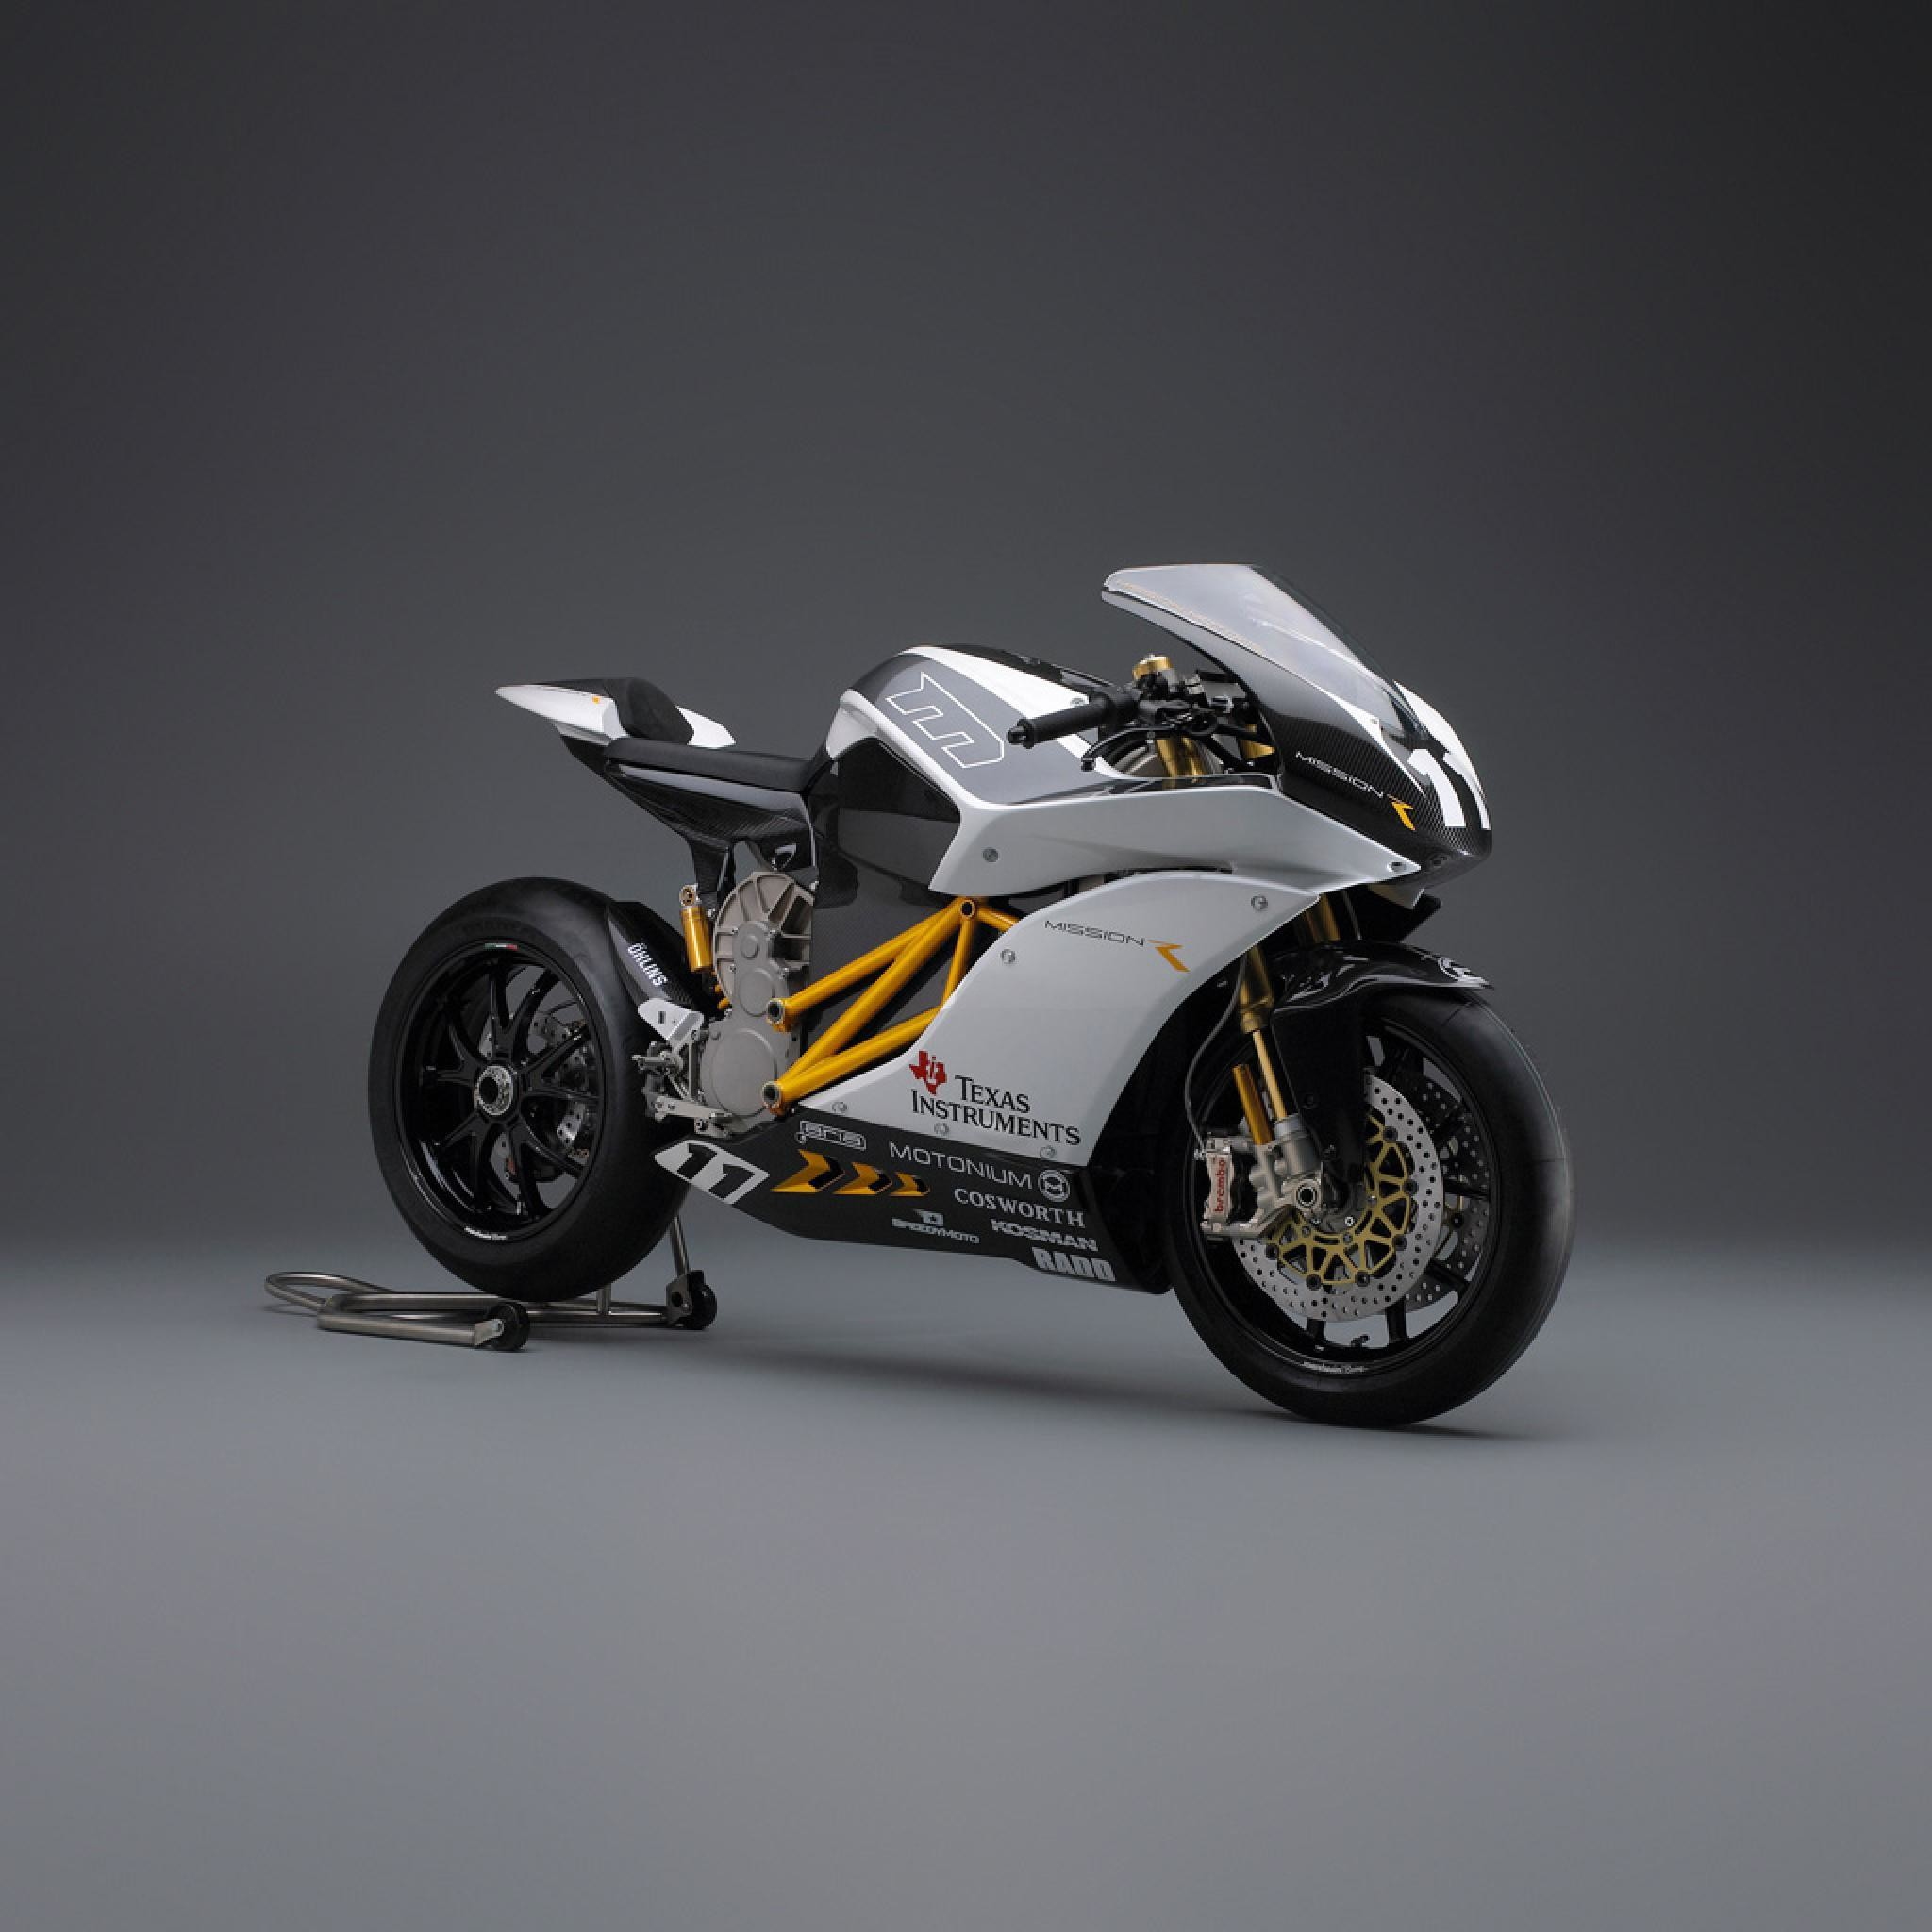 2048x2048 Motorbikes – Mission R Electric Superbike Wallpaper for ...